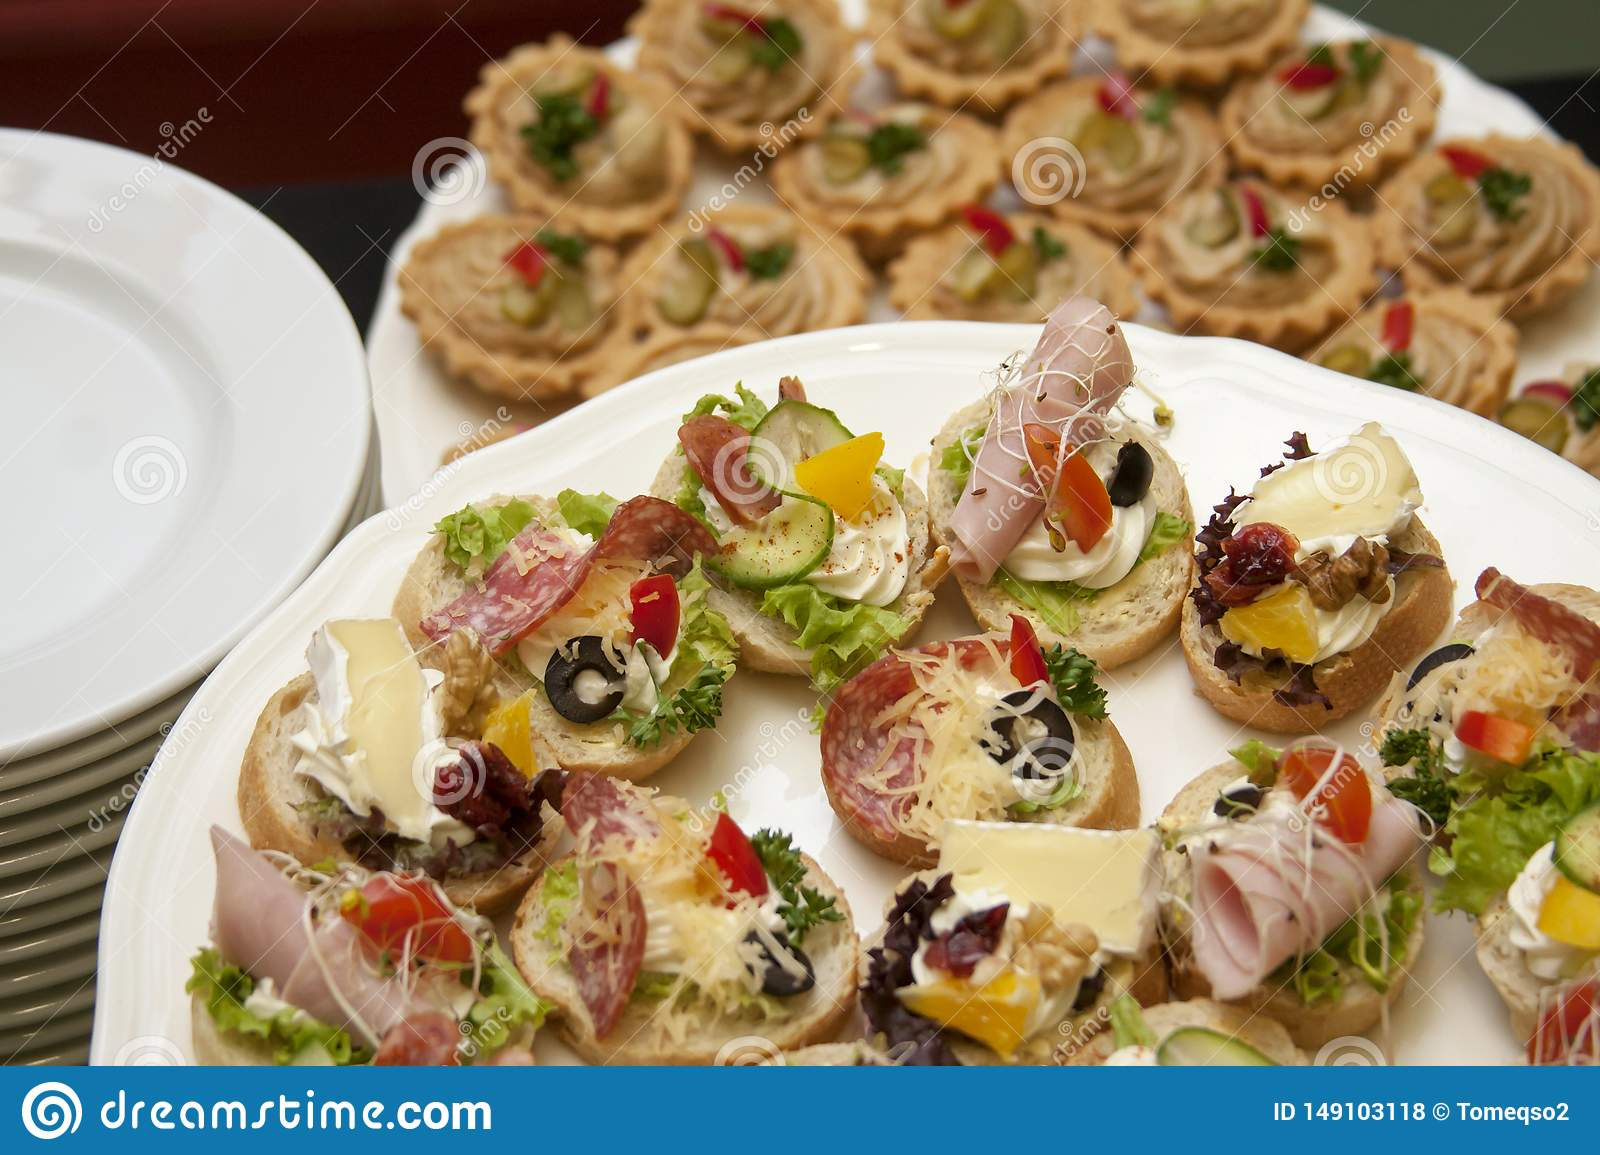 catering-company-food-service.jpg